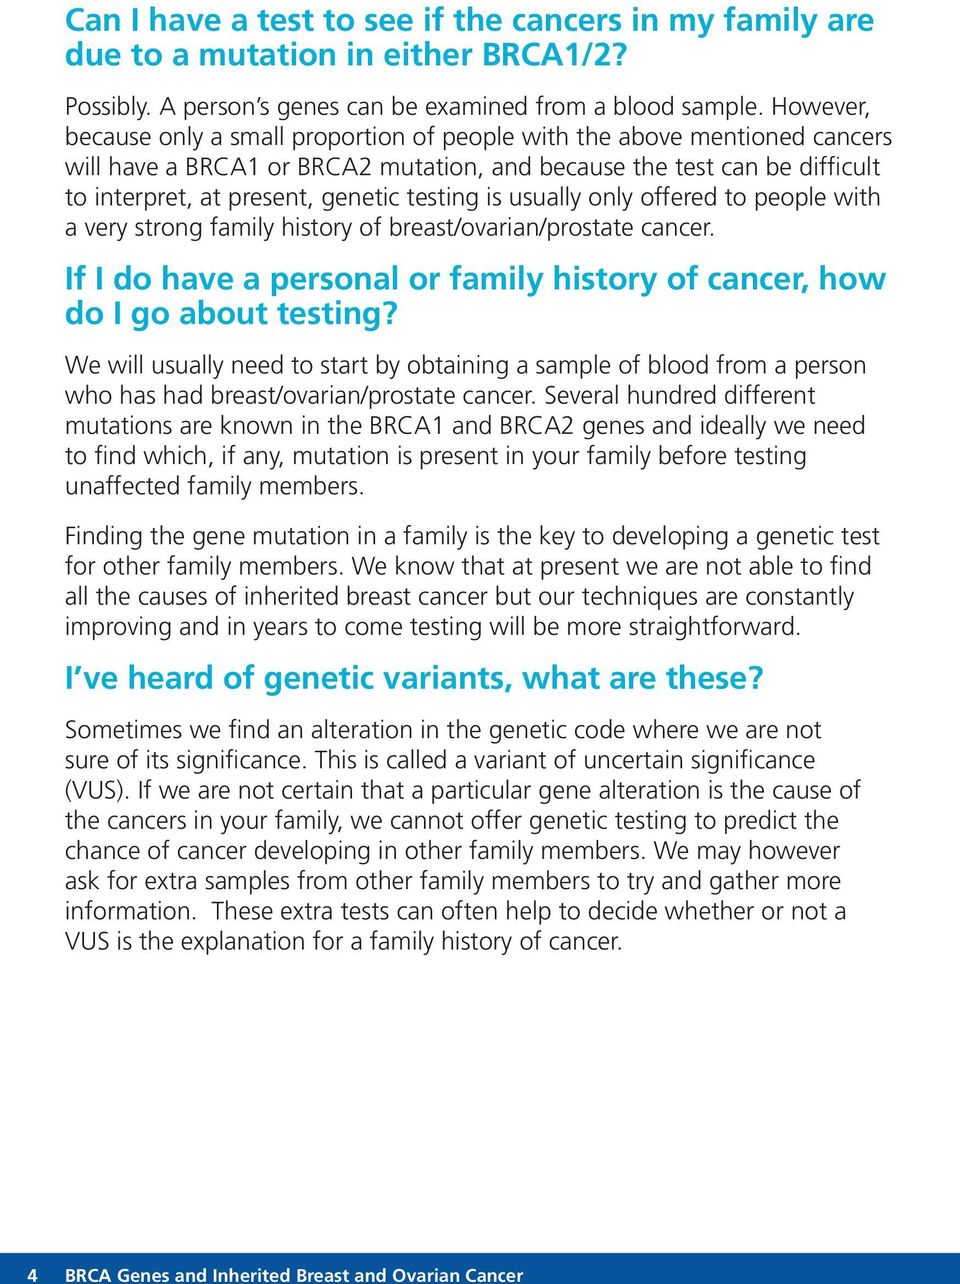 testing is usually only offered to people with a very strong family history of breast/ovarian/prostate cancer. If I do have a personal or family history of cancer, how do I go about testing?